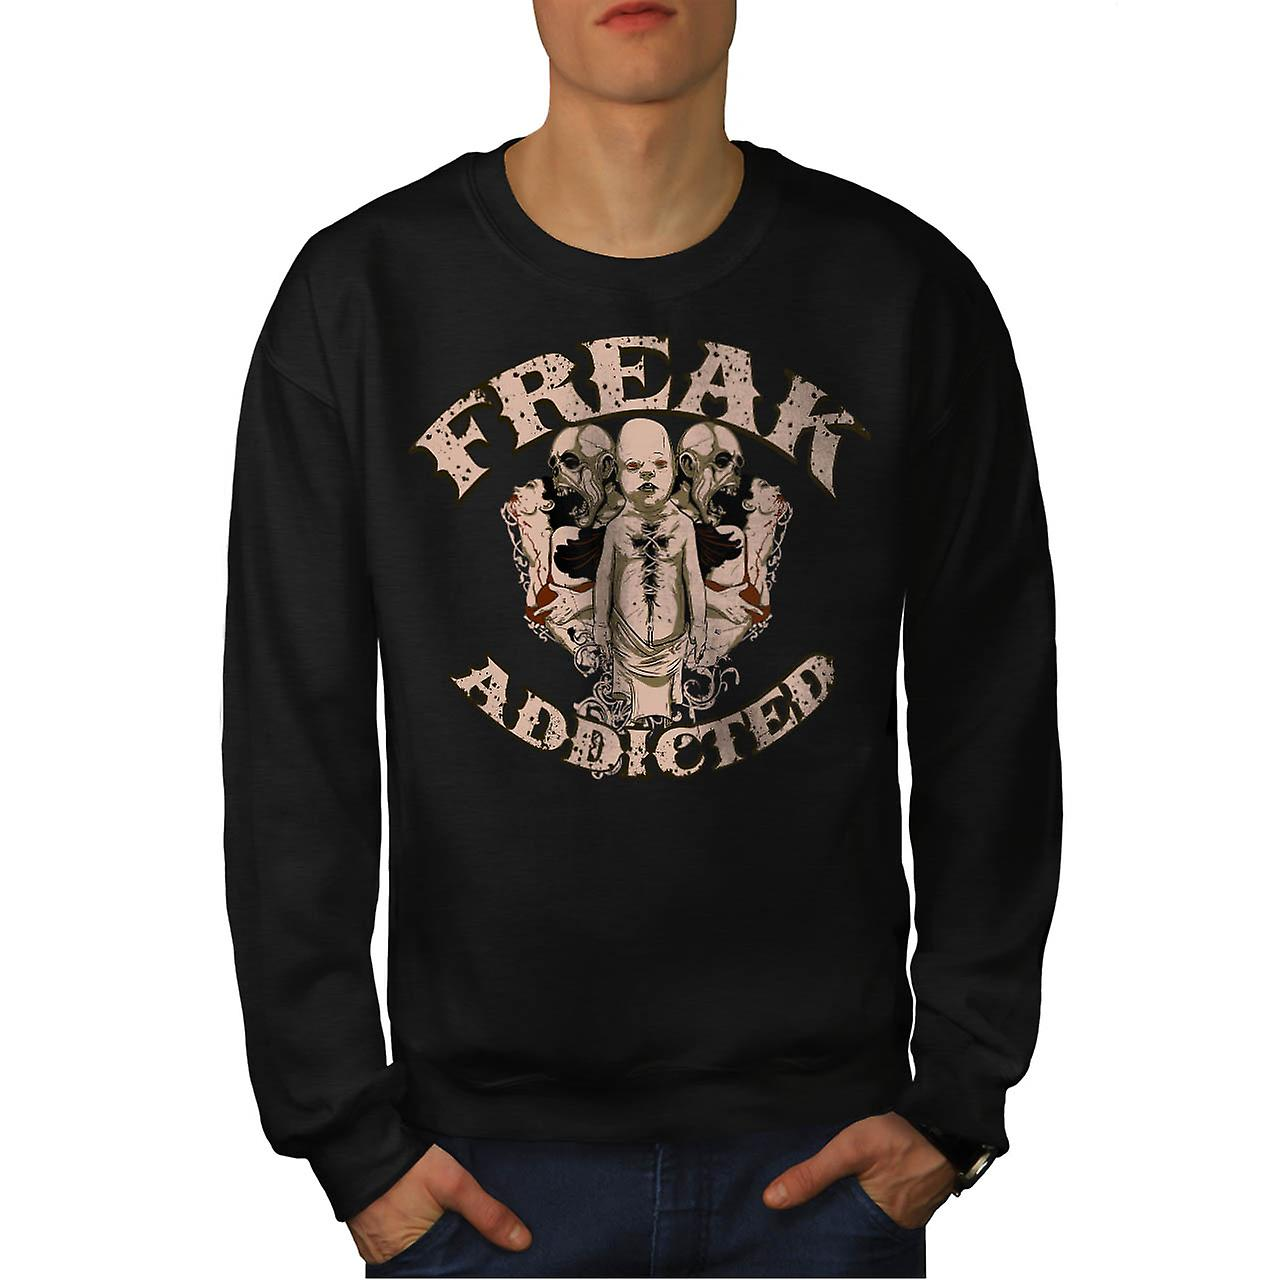 Freak Die Addict Baby Ghost Kids Men Black Sweatshirt | Wellcoda